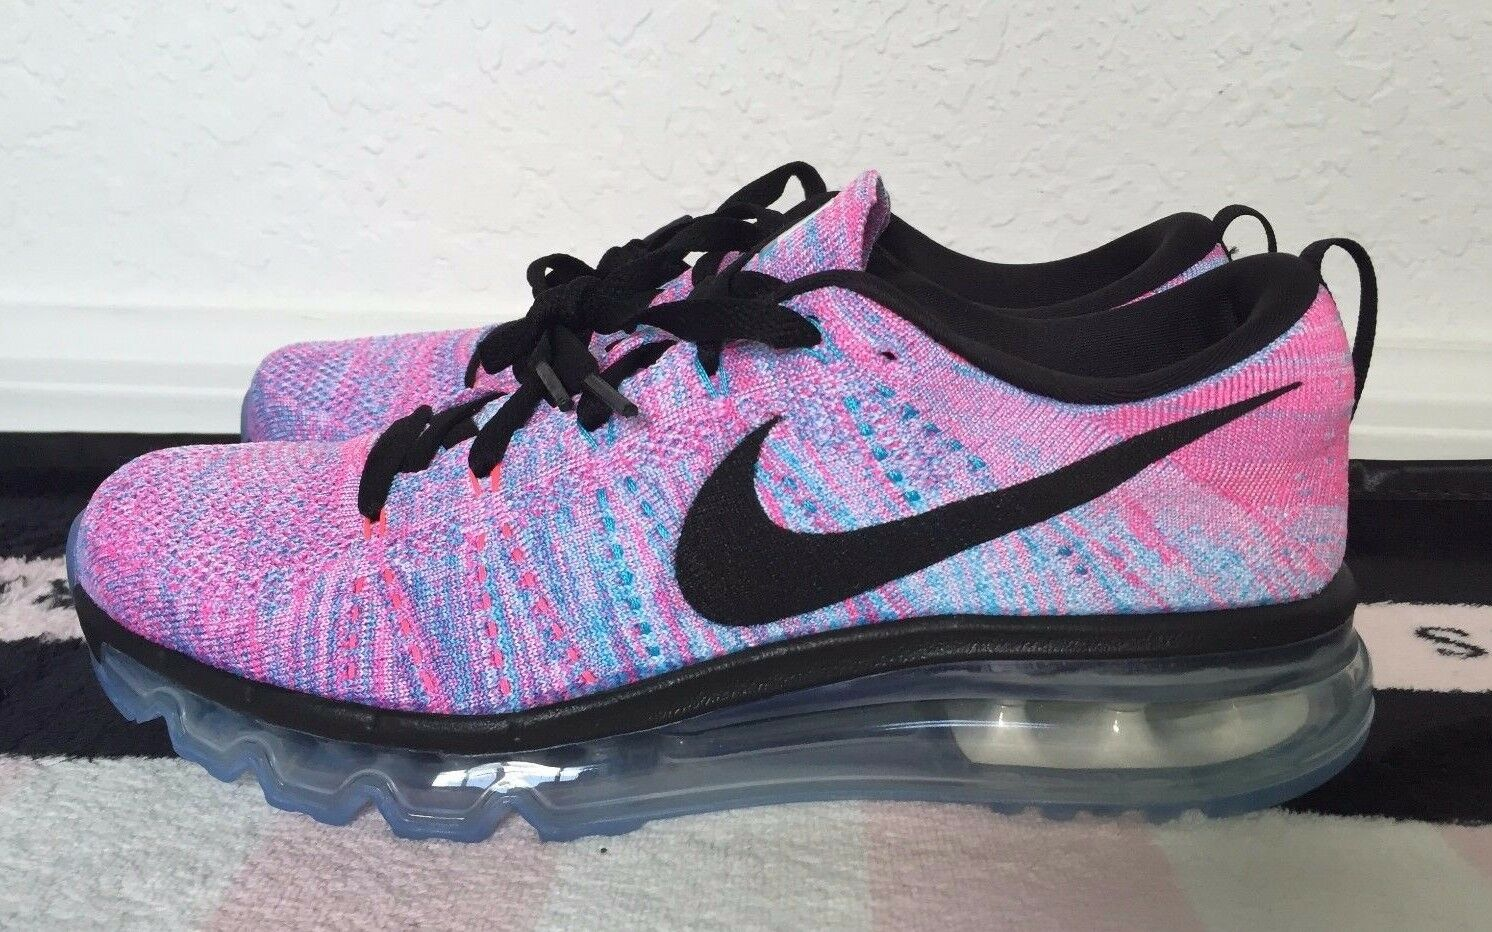 Nike Flyknit Air Max Chlorine Blue Pink Blast Black Women's Sneakers - 8.5, 11